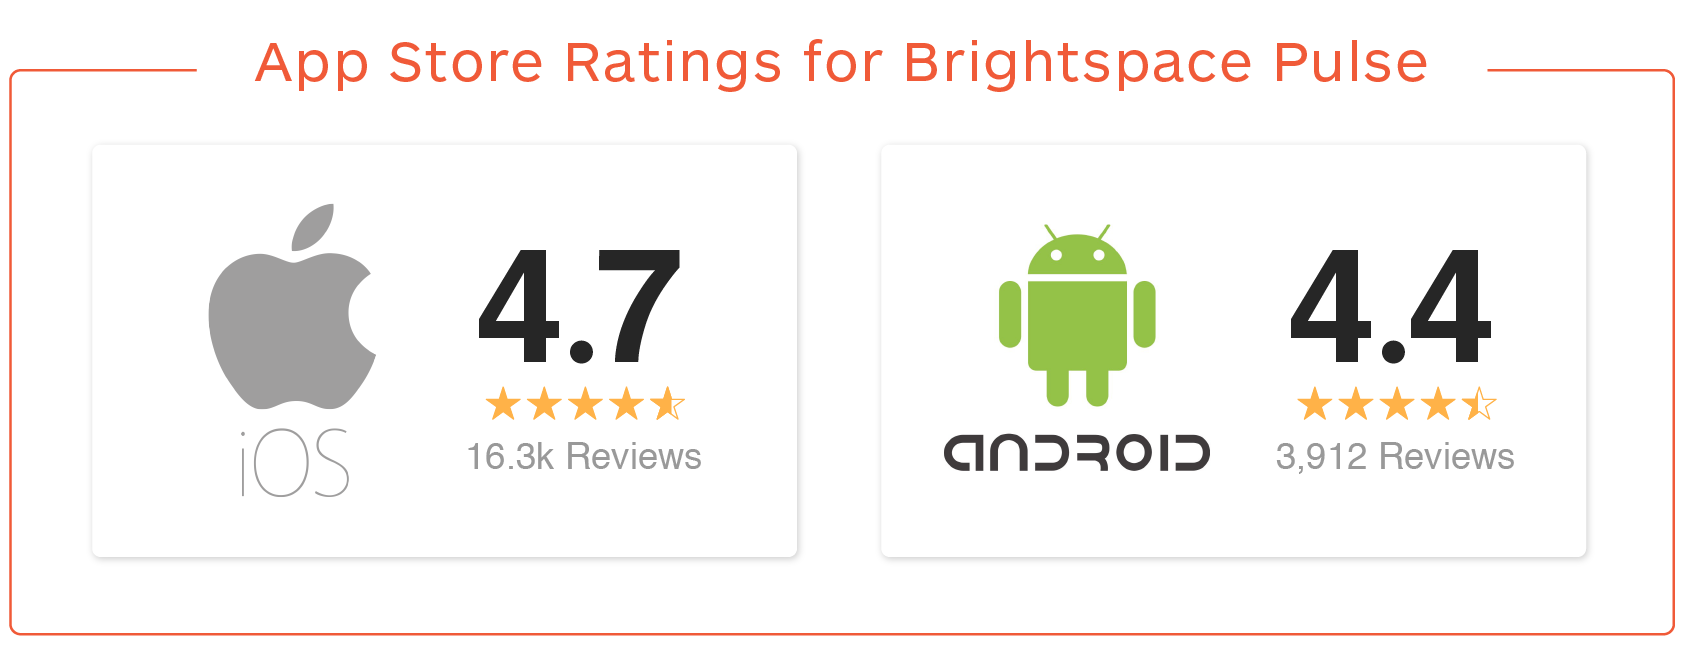 App store ratings for Brightspace Pulse